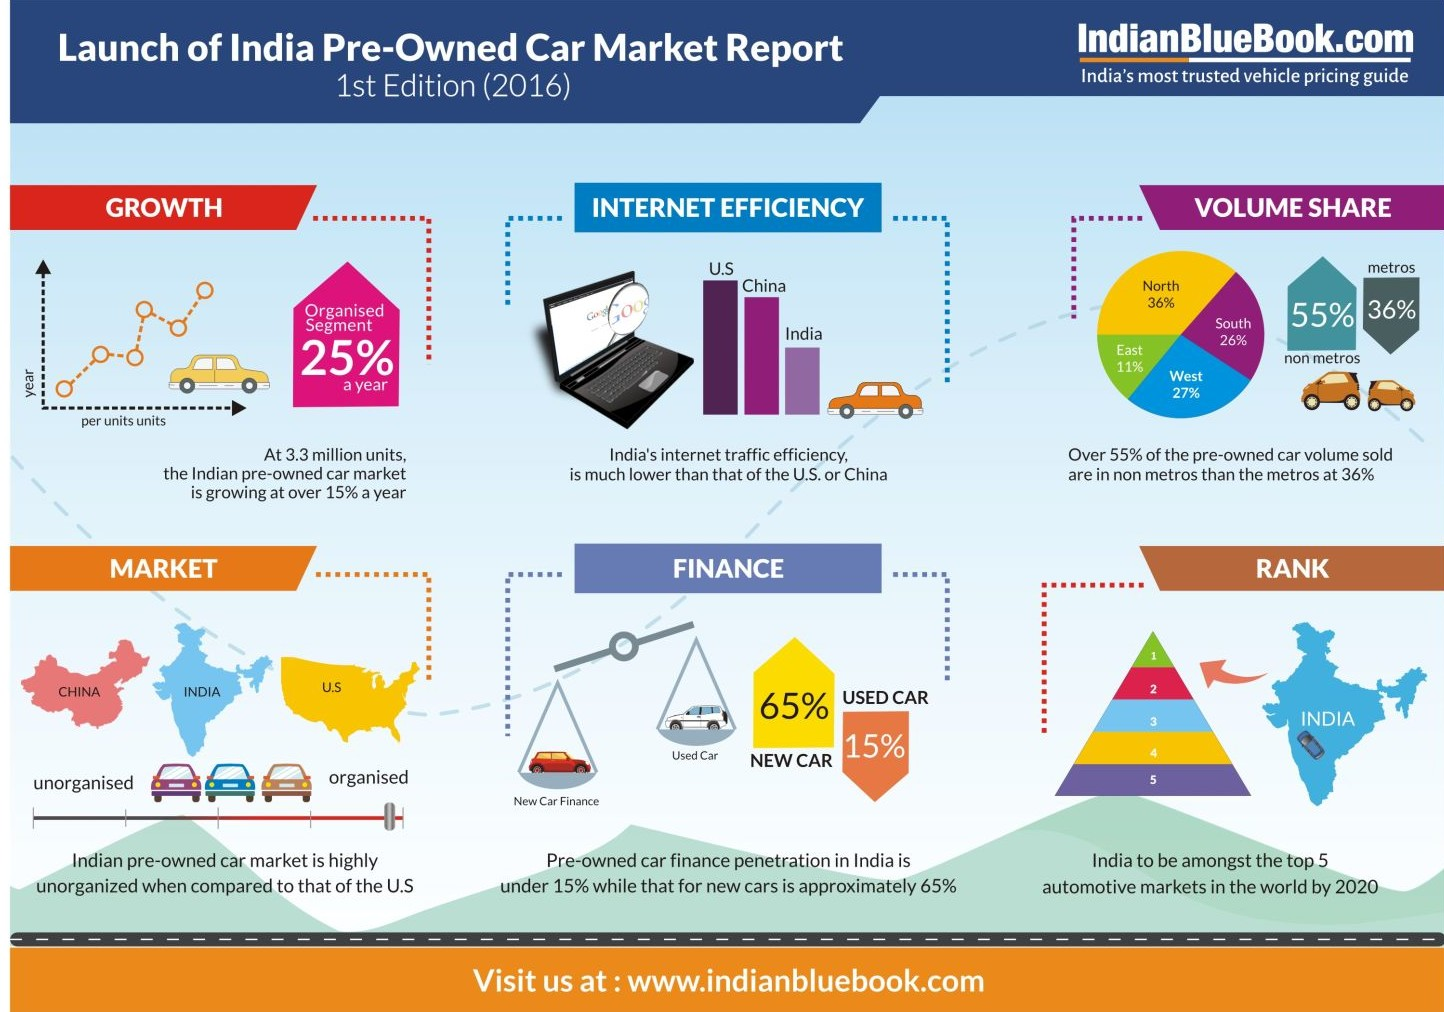 First edition of the India pre-owned car market report 2016 released by IndianBlueBook (1)